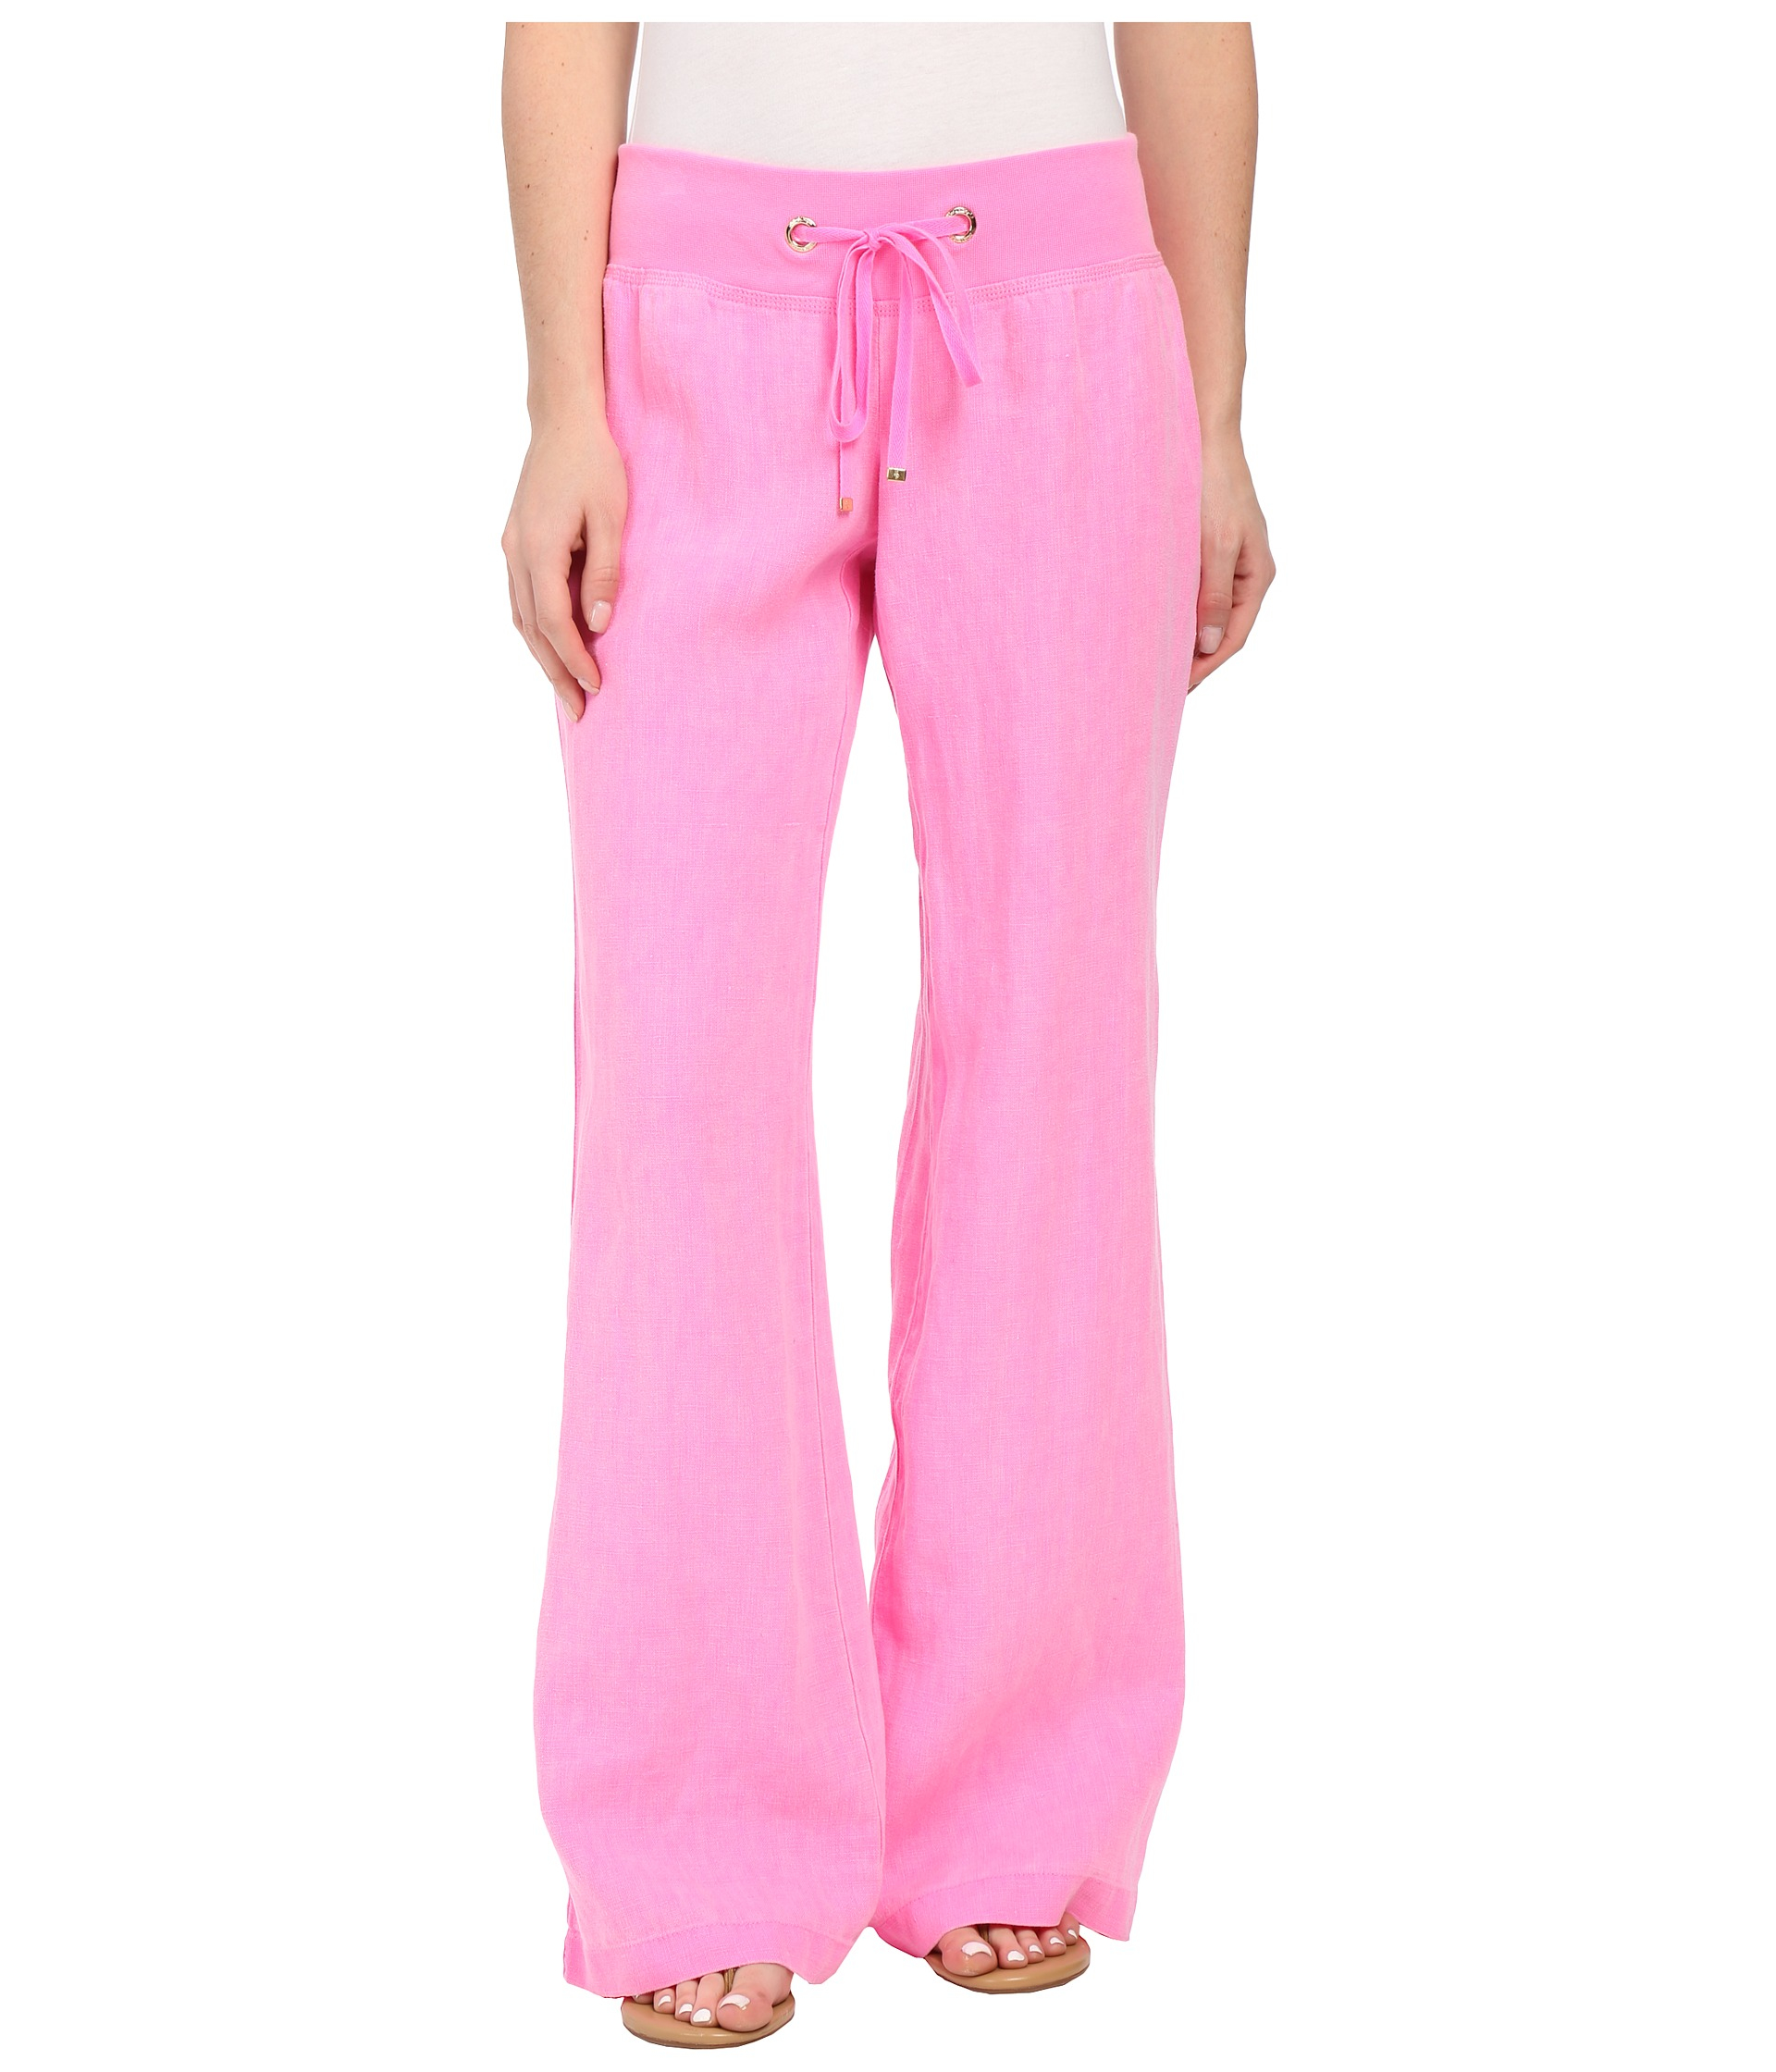 518b0a0b8f Lilly Pulitzer Beach Pant in Pink - Lyst